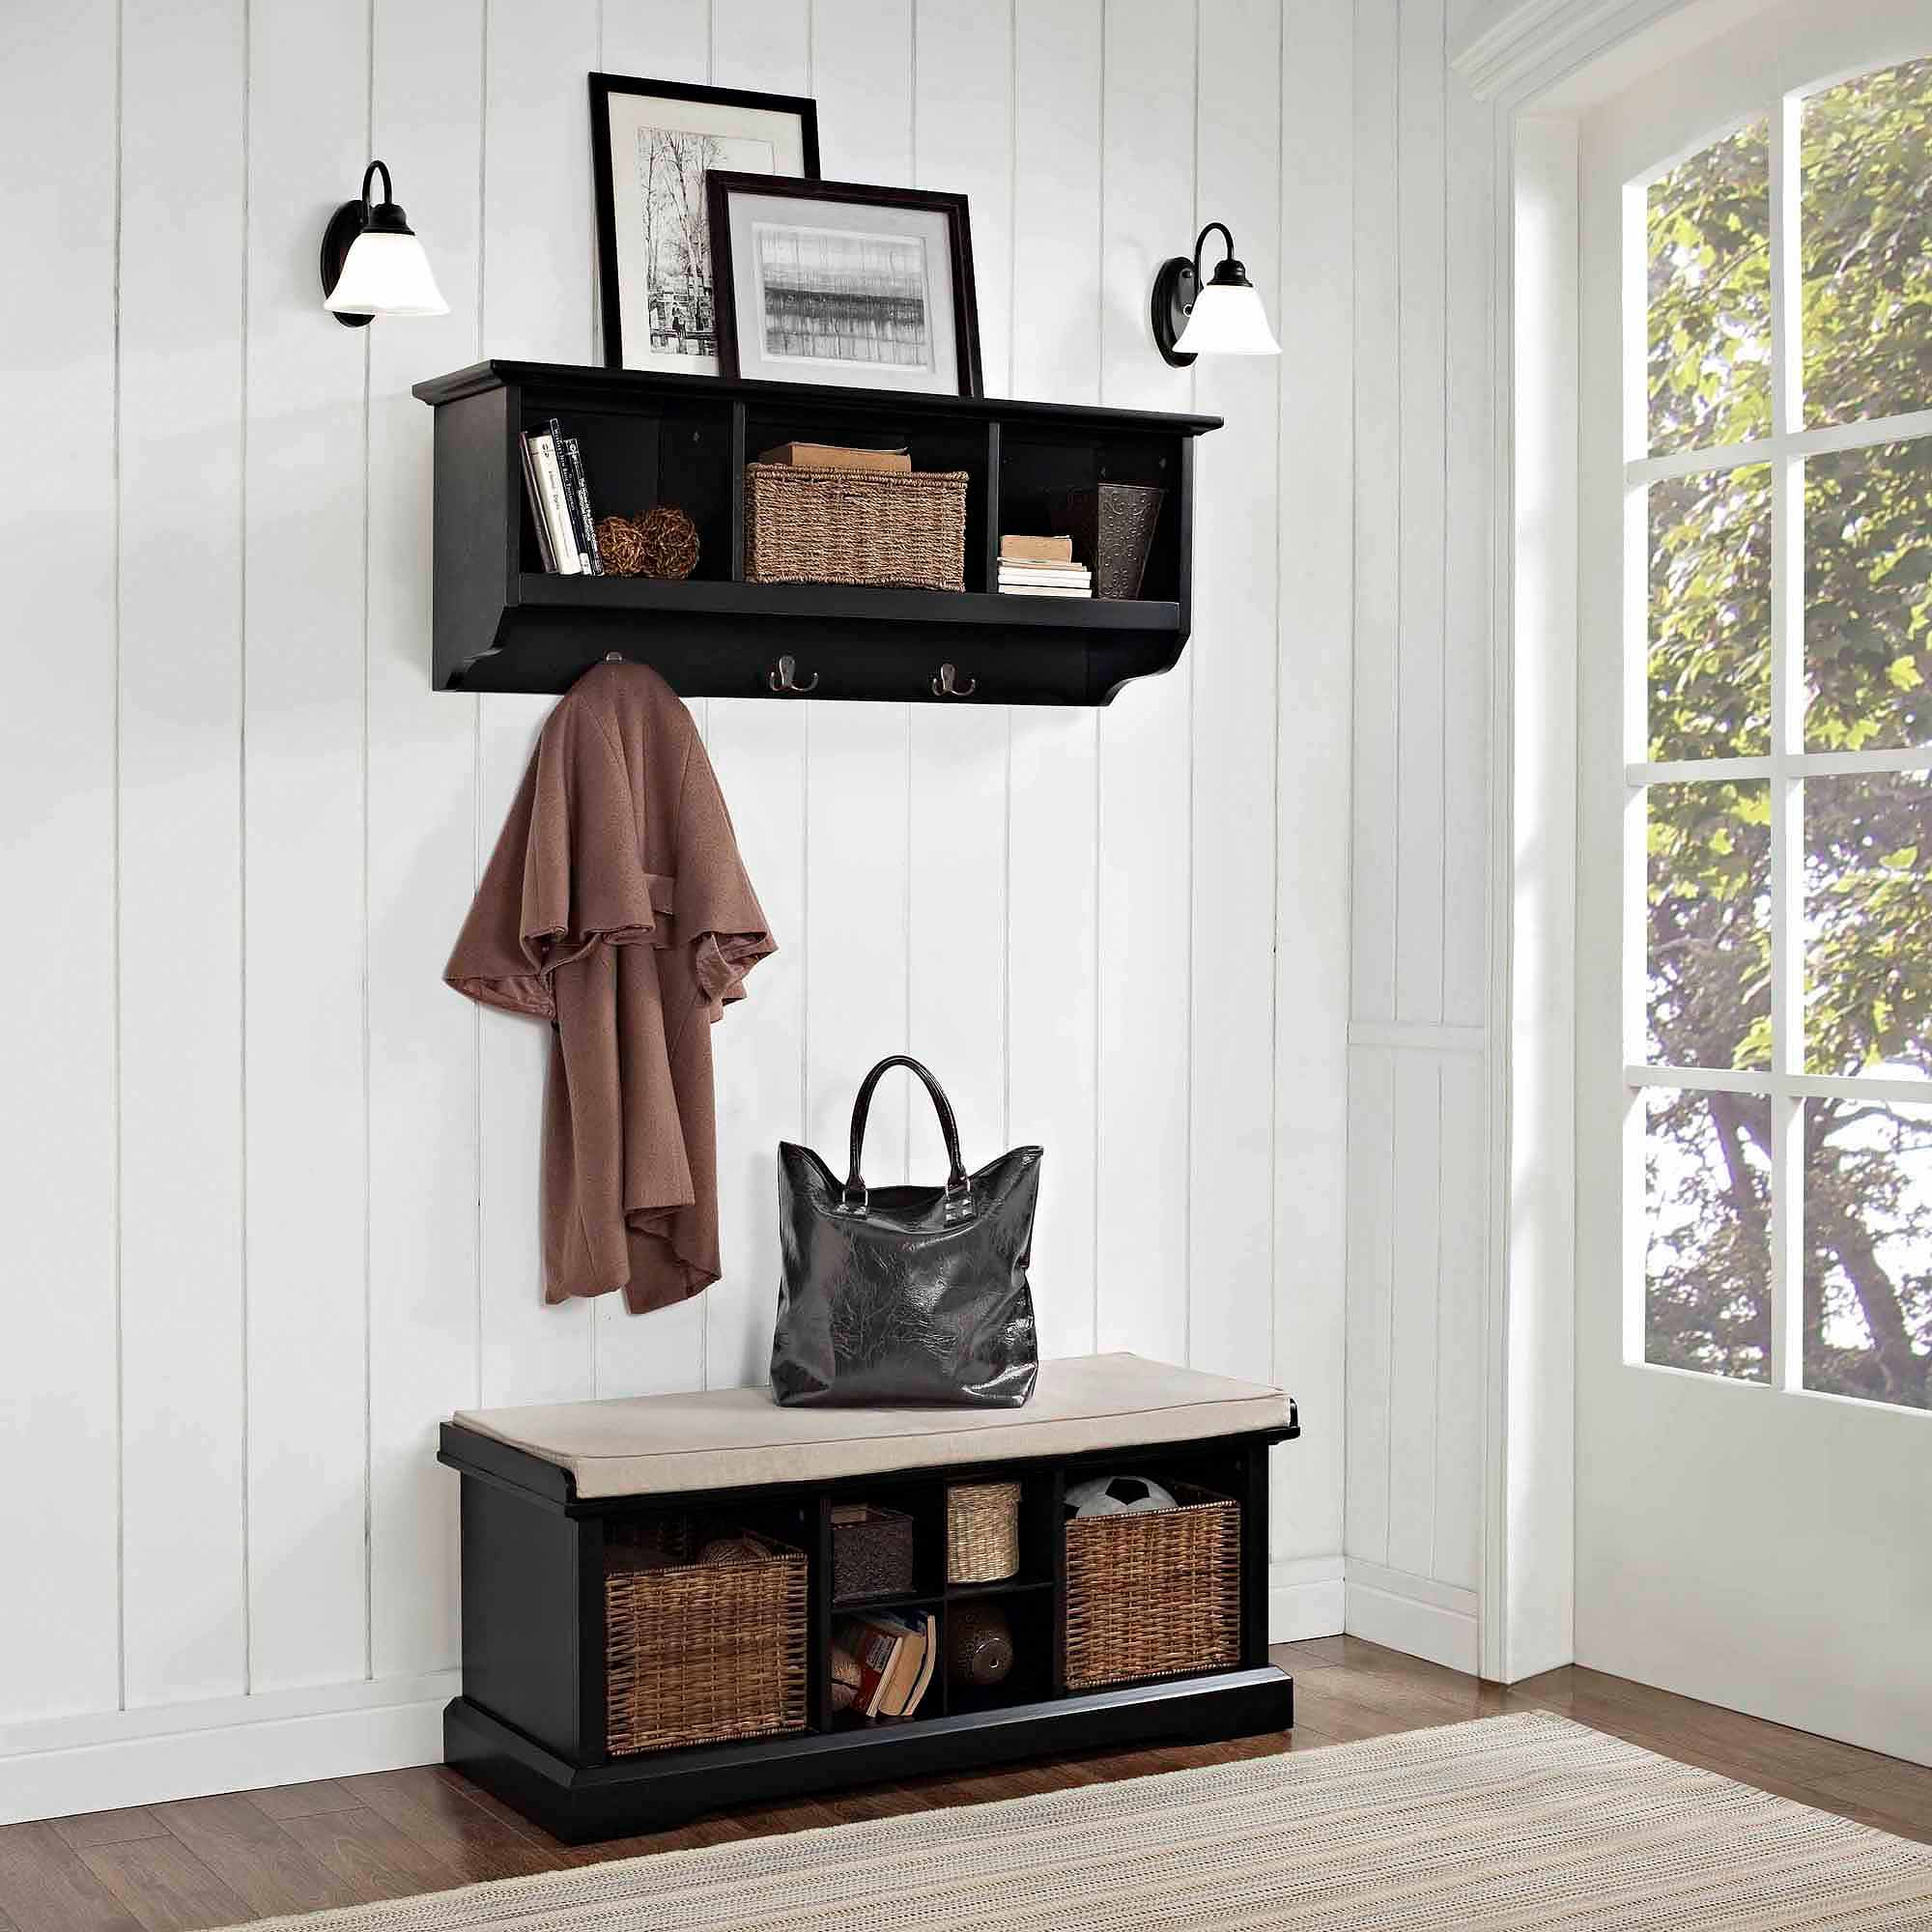 entryway dakota storage org simpli pilotproject wayfair home reviews ideas way entry bench